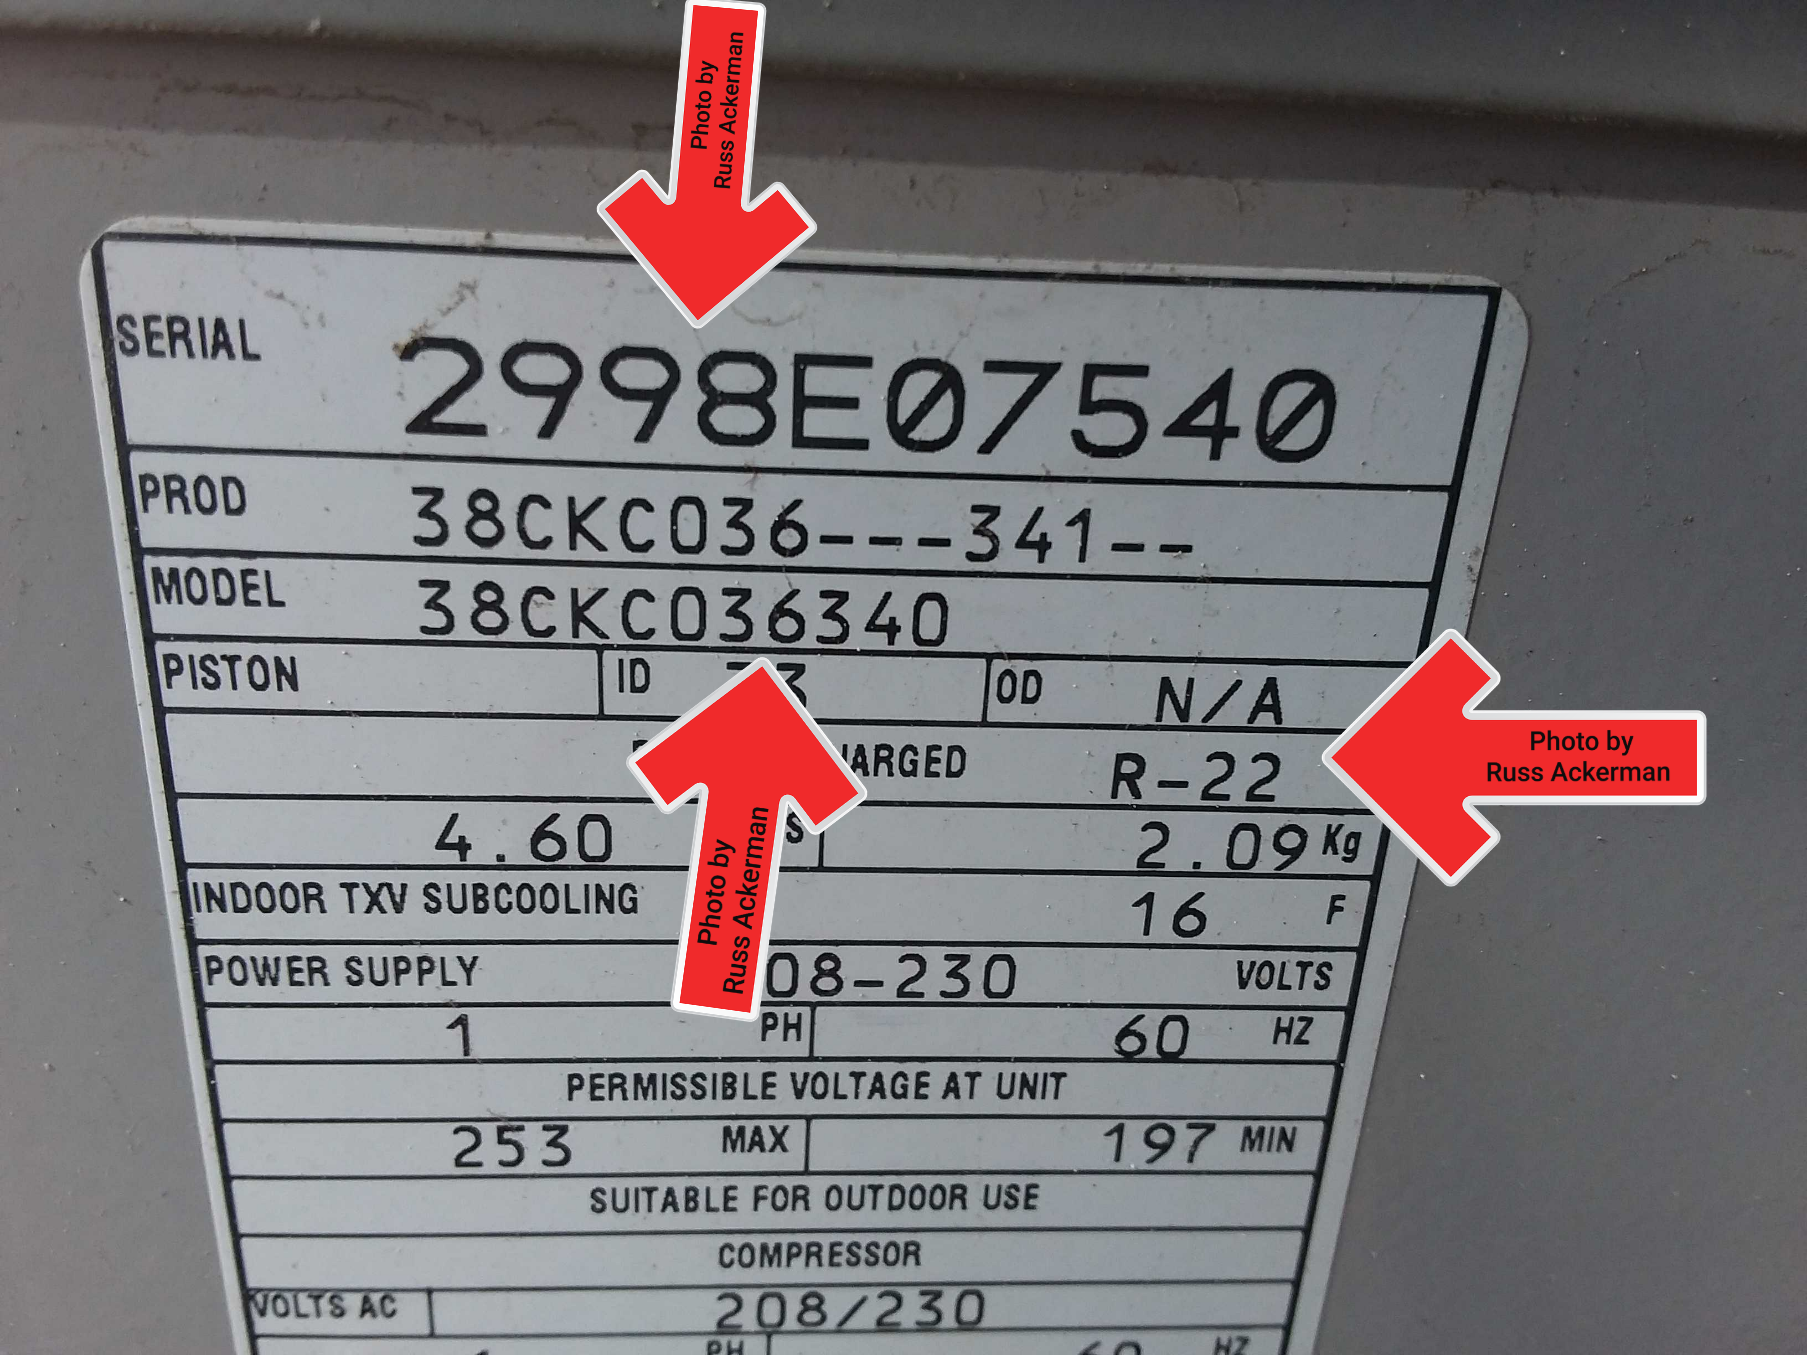 This 3-ton air conditioner dated 1998 uses the now prohibited R-22 refrigerant. Replacement of this unit will be needed once it begins to fail.